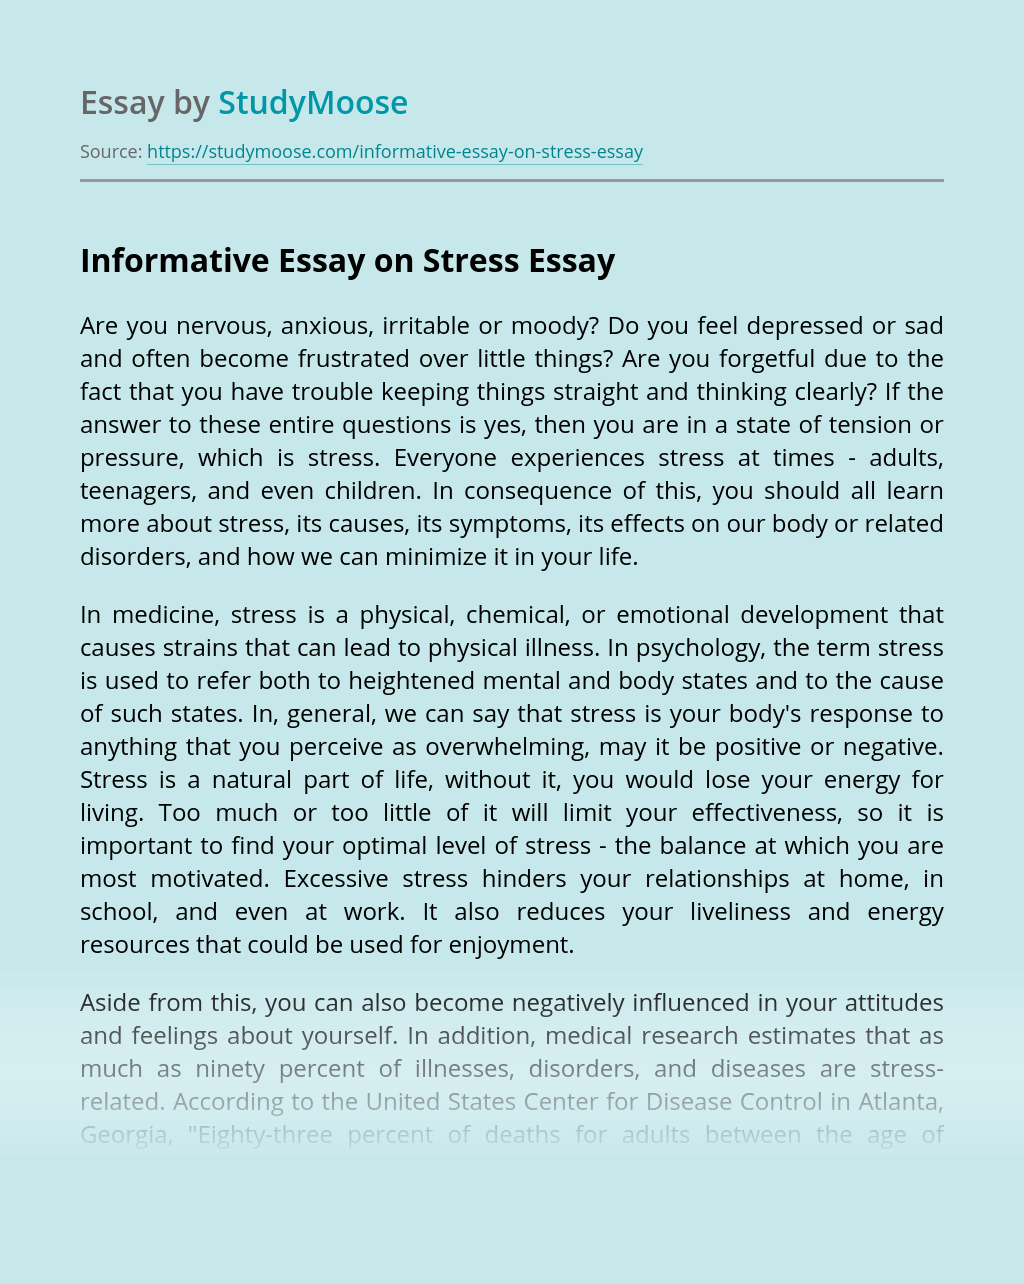 Informative Essay on Stress